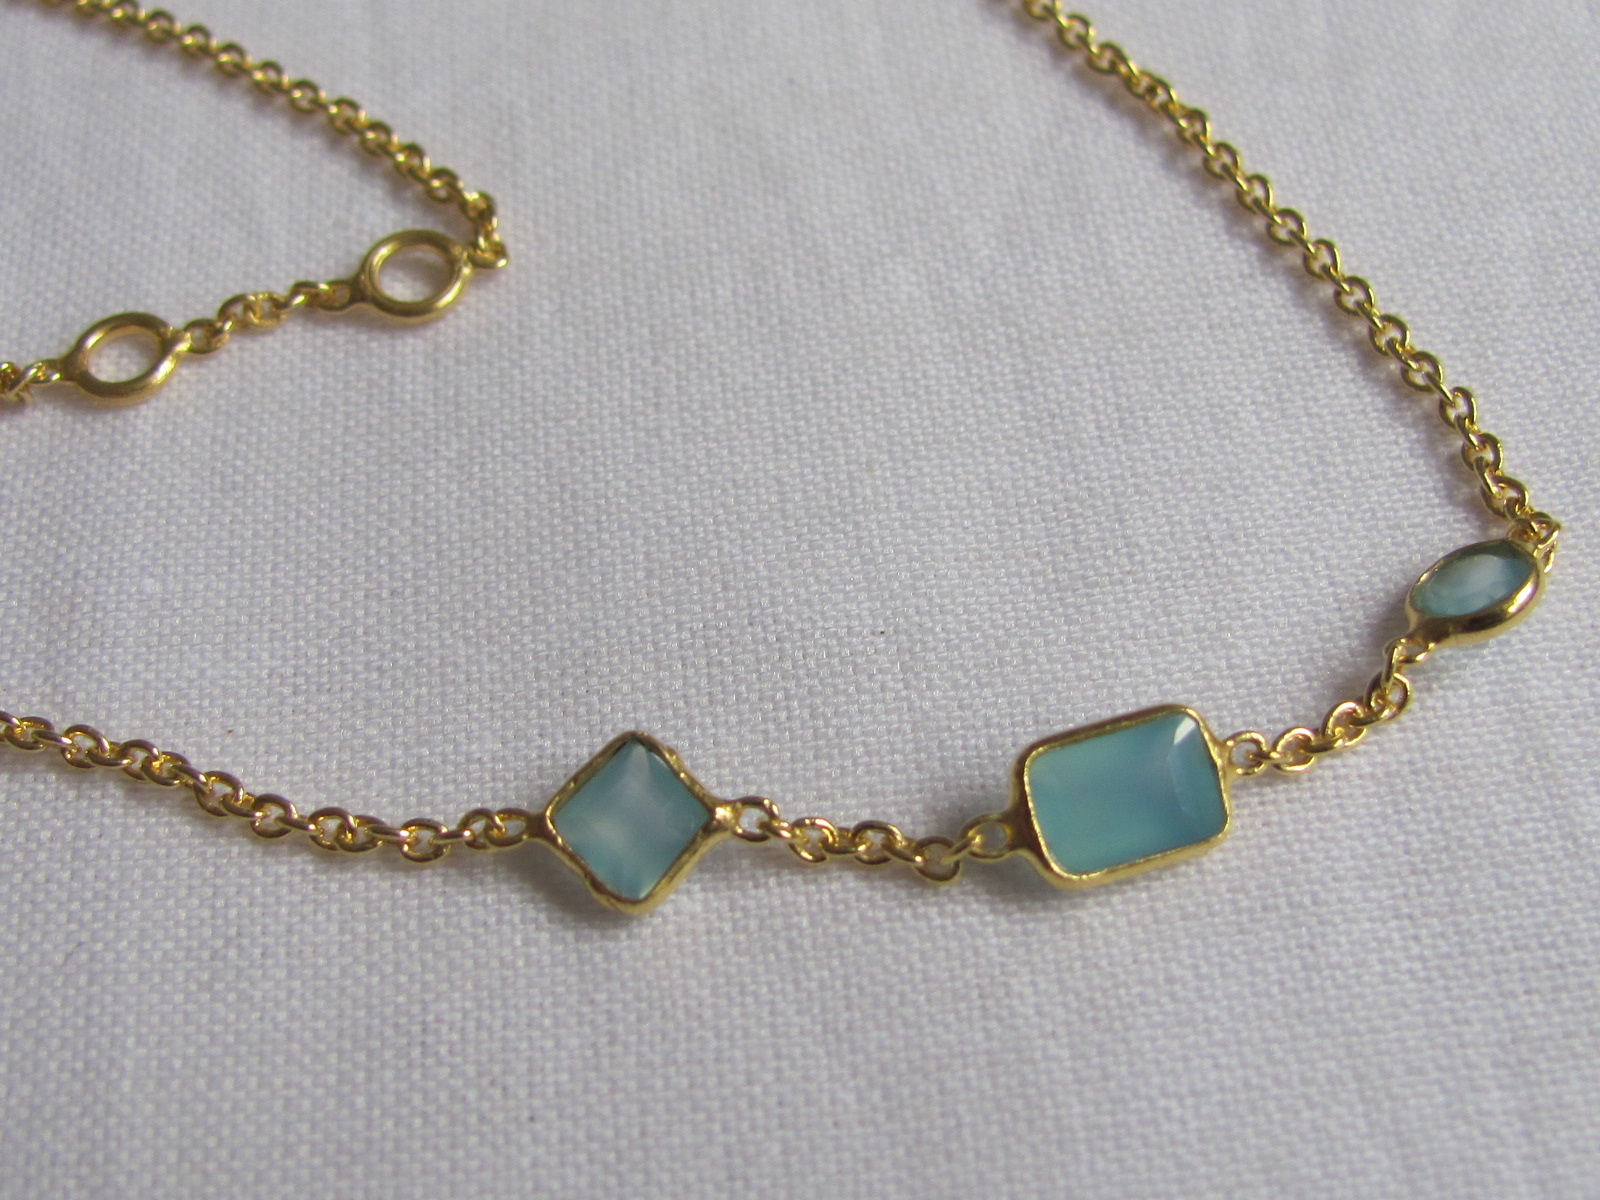 Necklace gold on silver with calceadon stones